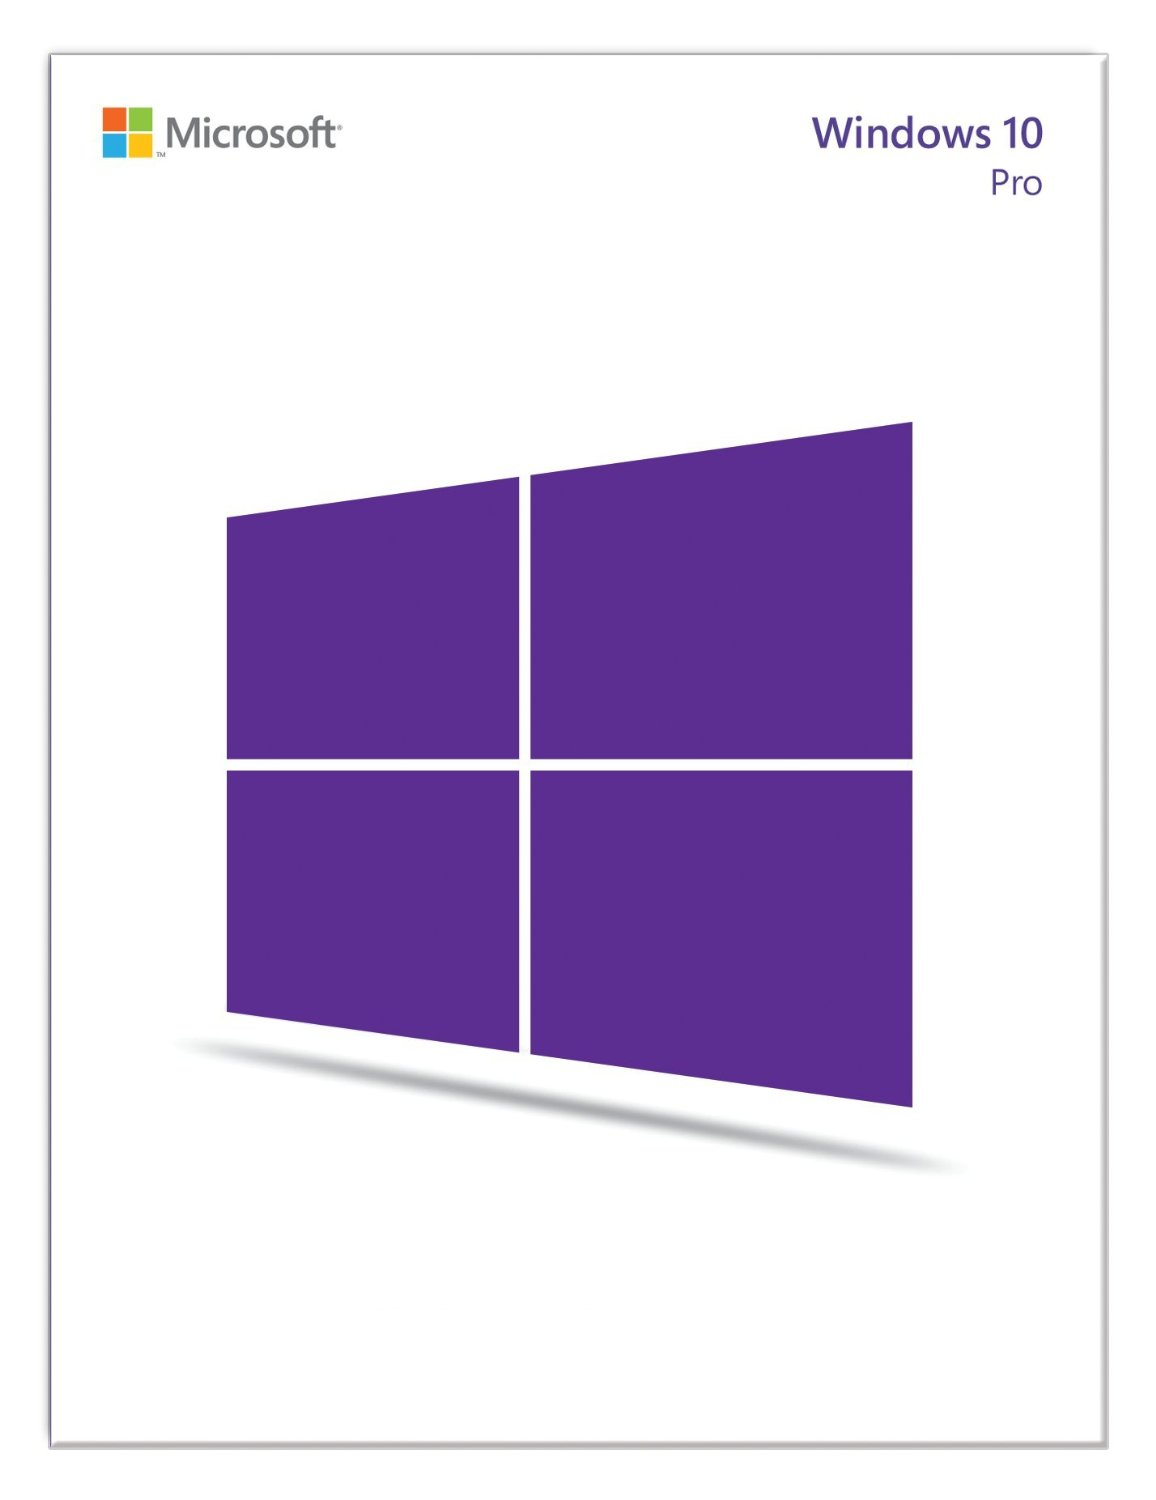 New working Ms office 2013 product key for windows 7/8 ~ windows